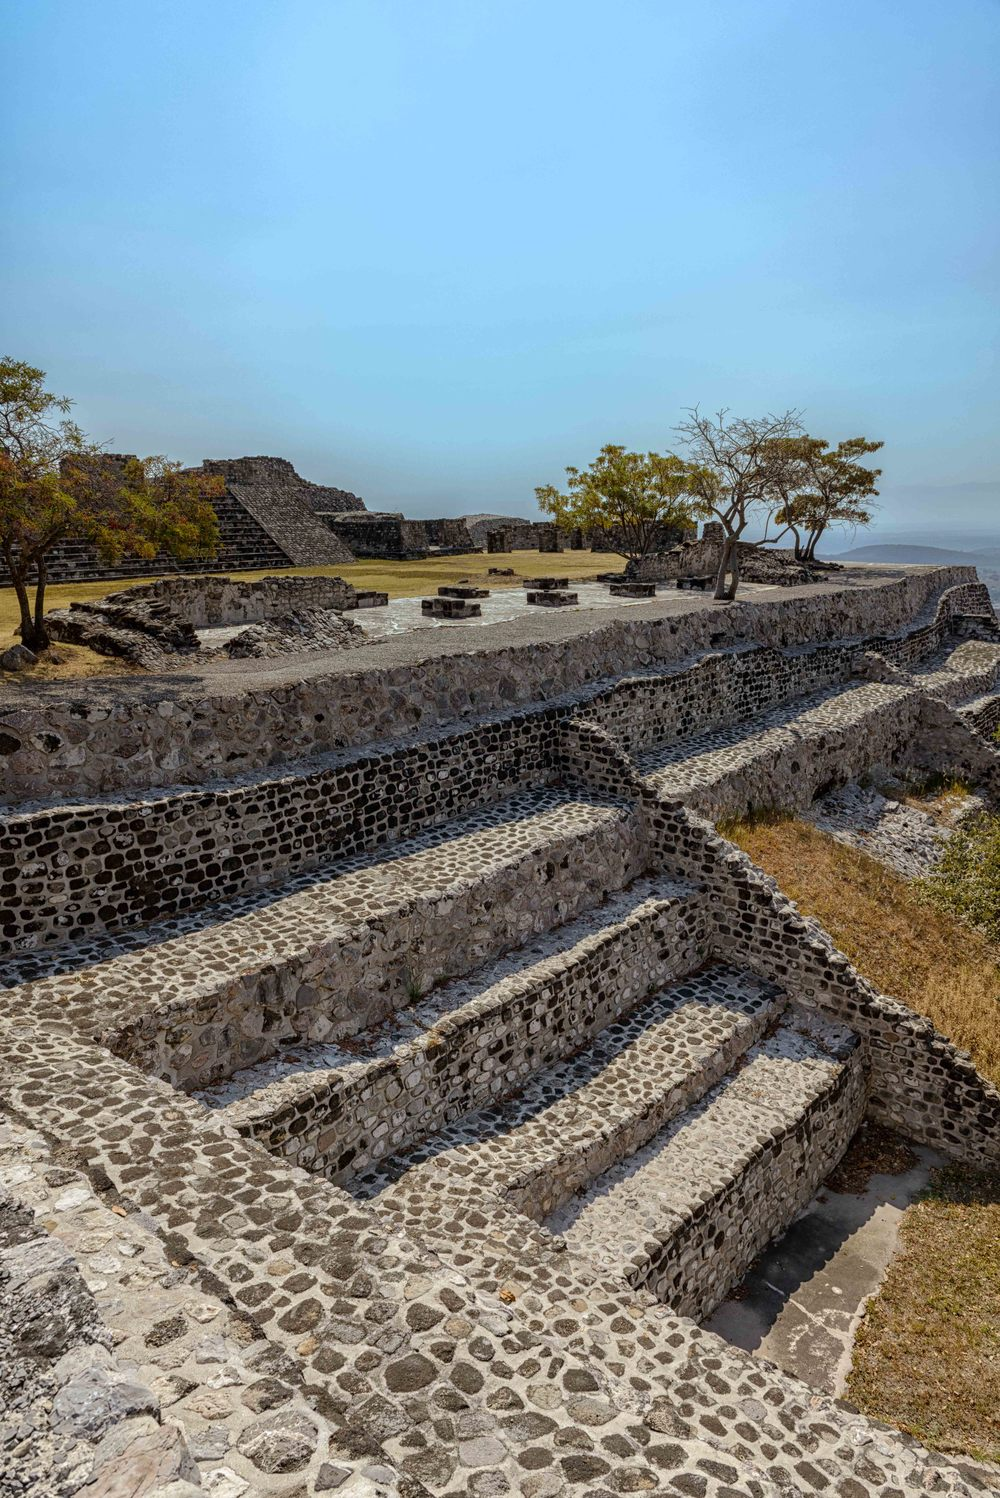 Porches and stairs at Xochicalco.